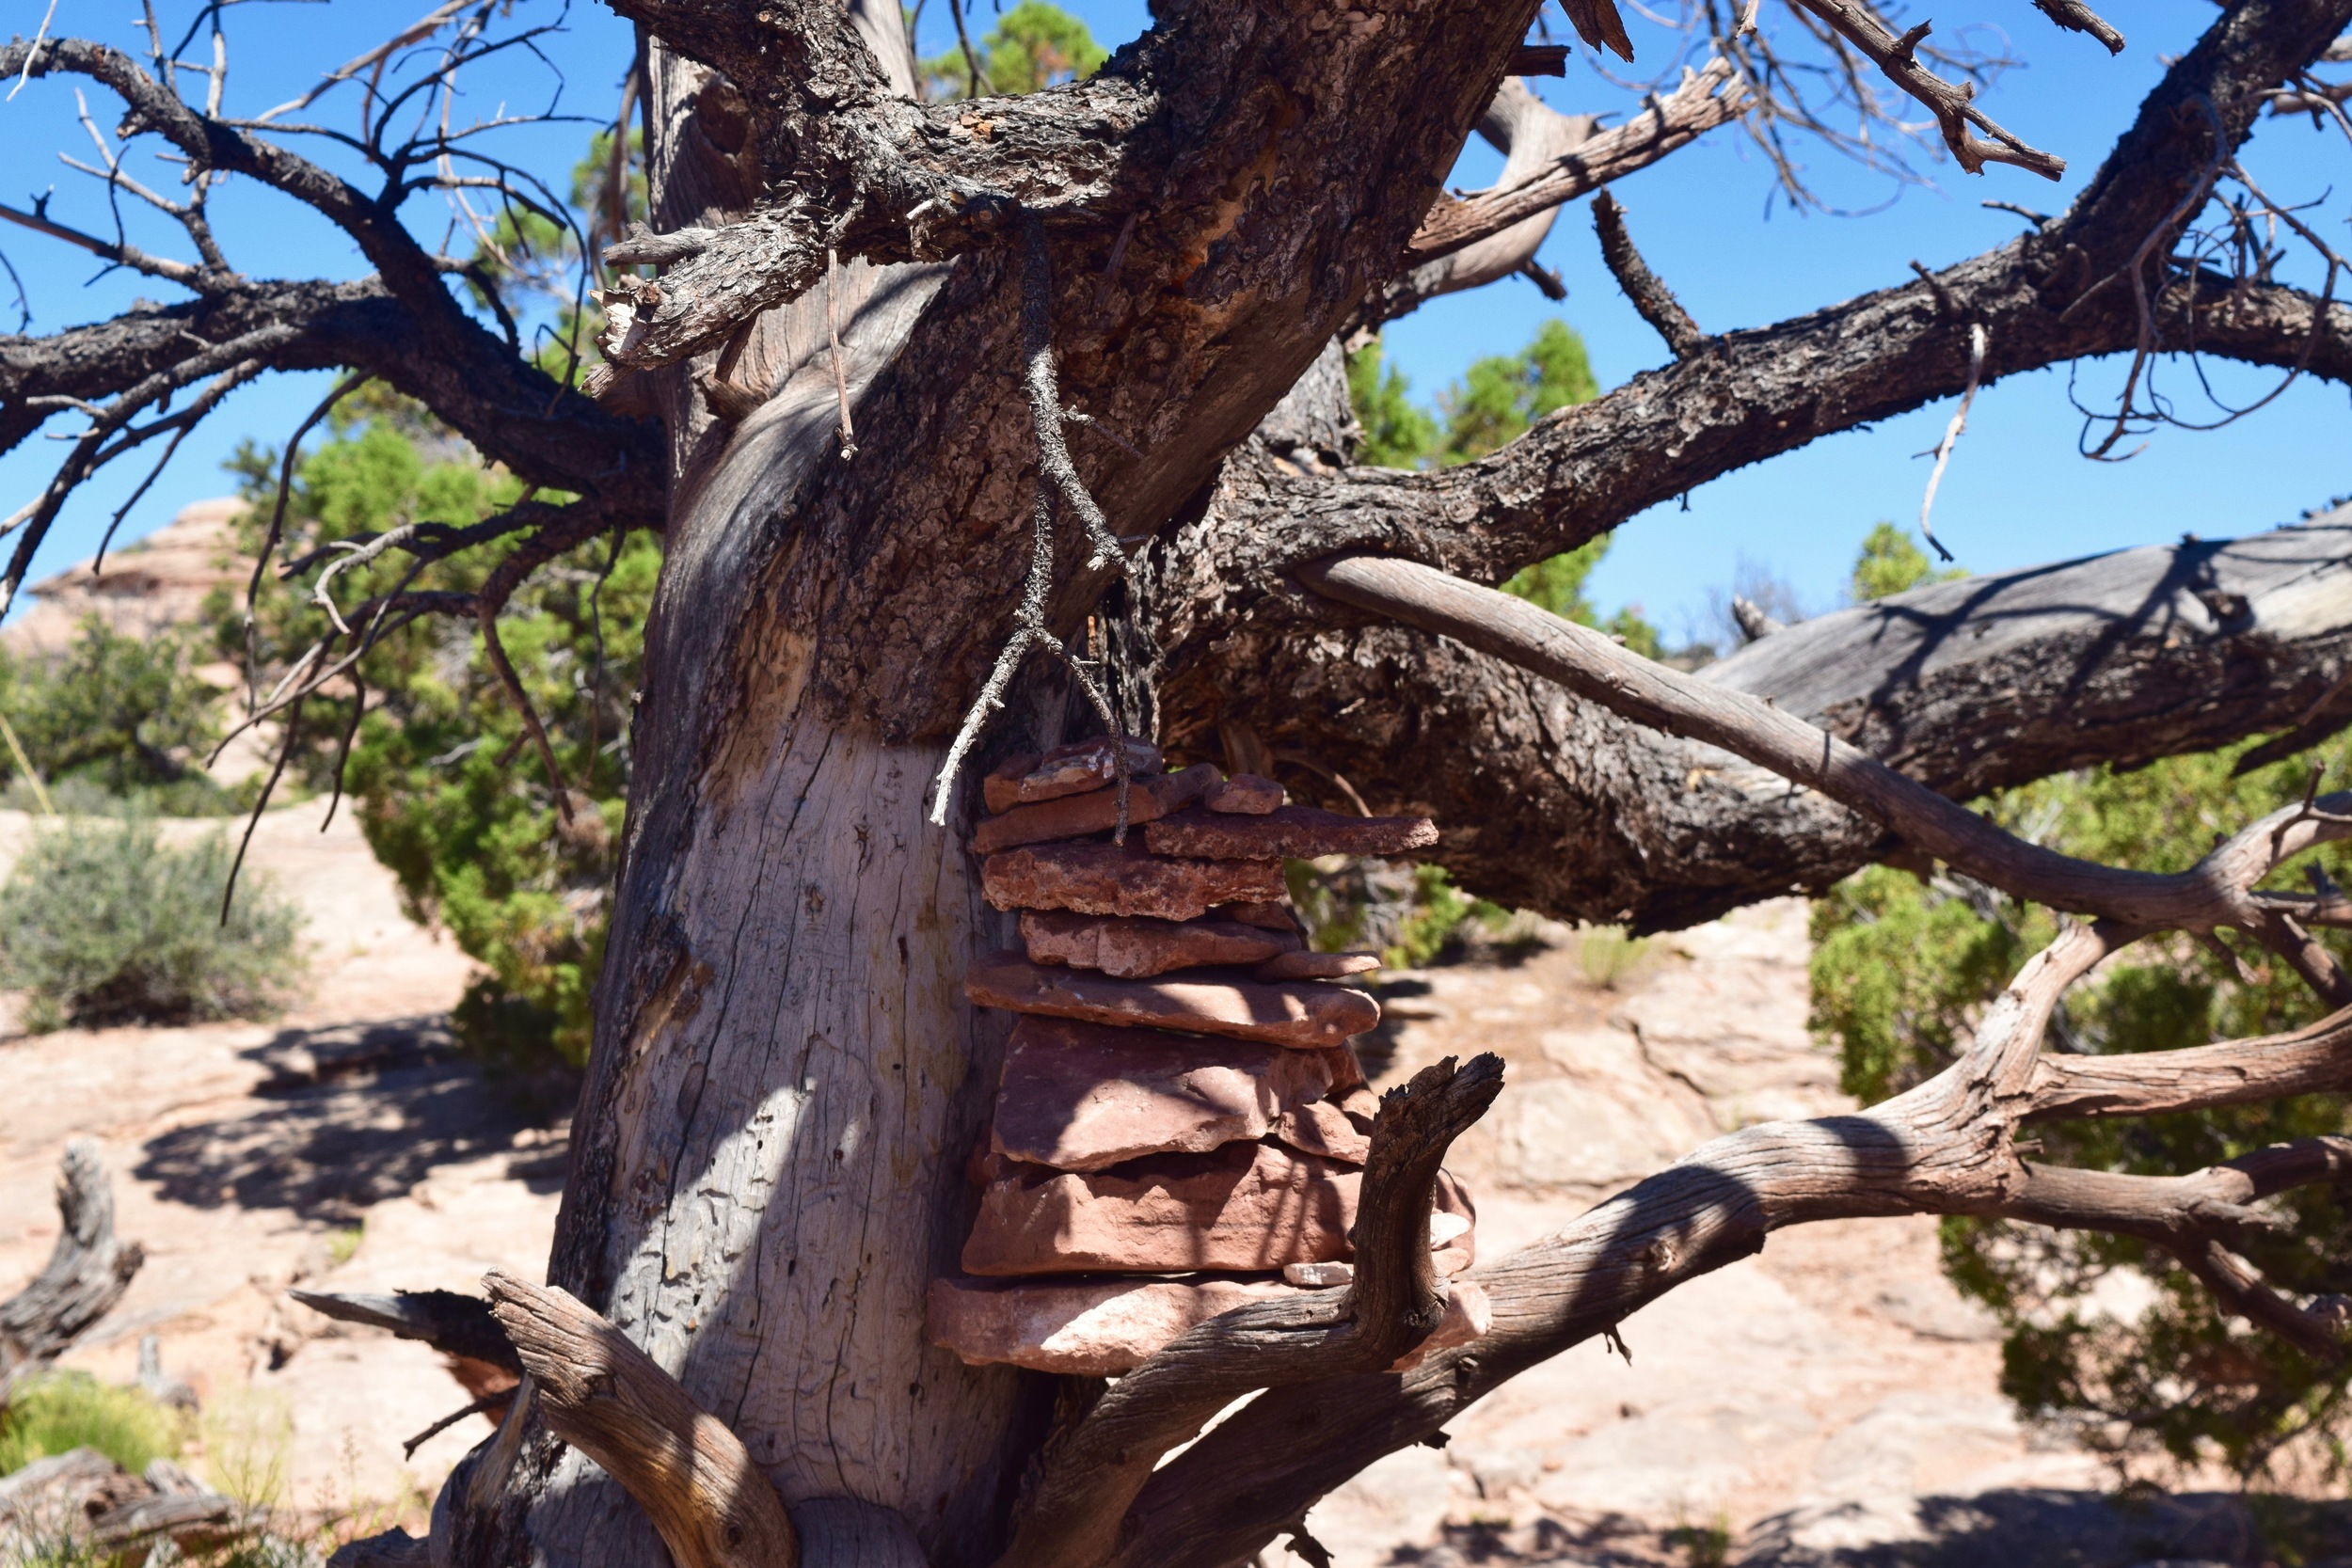 Cairn in a tree, because why not.